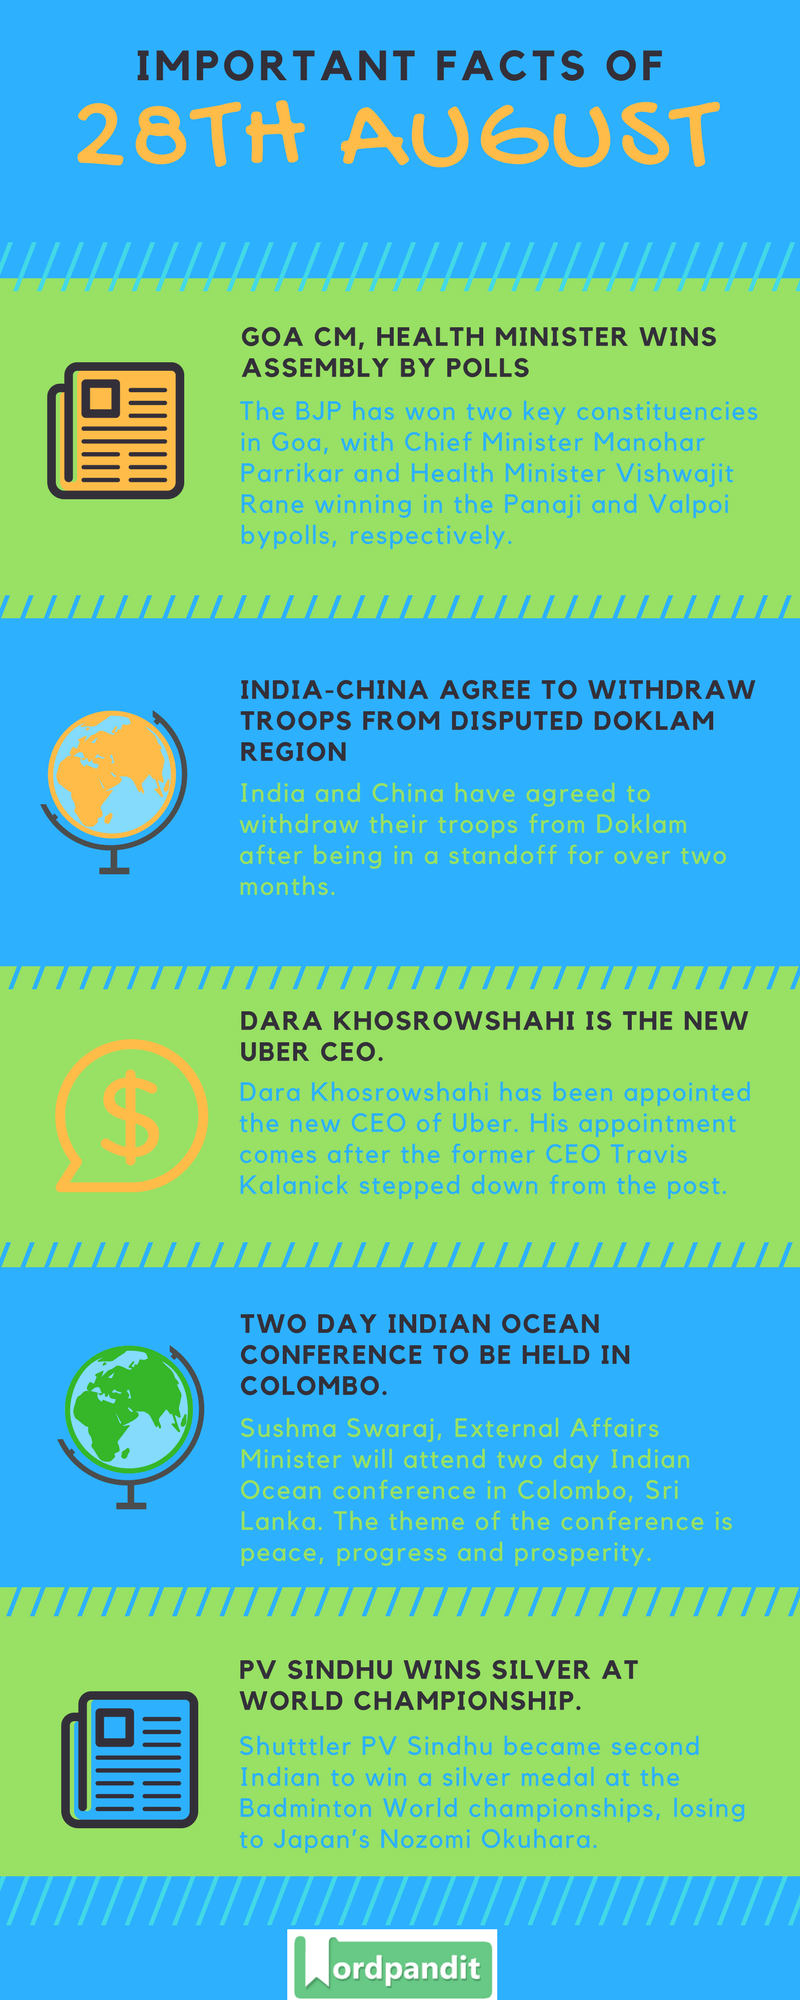 Daily-Current-Affairs-28-august-2017-Current-Affairs-Quiz-august-28-2017-Current-Affairs-Infographic